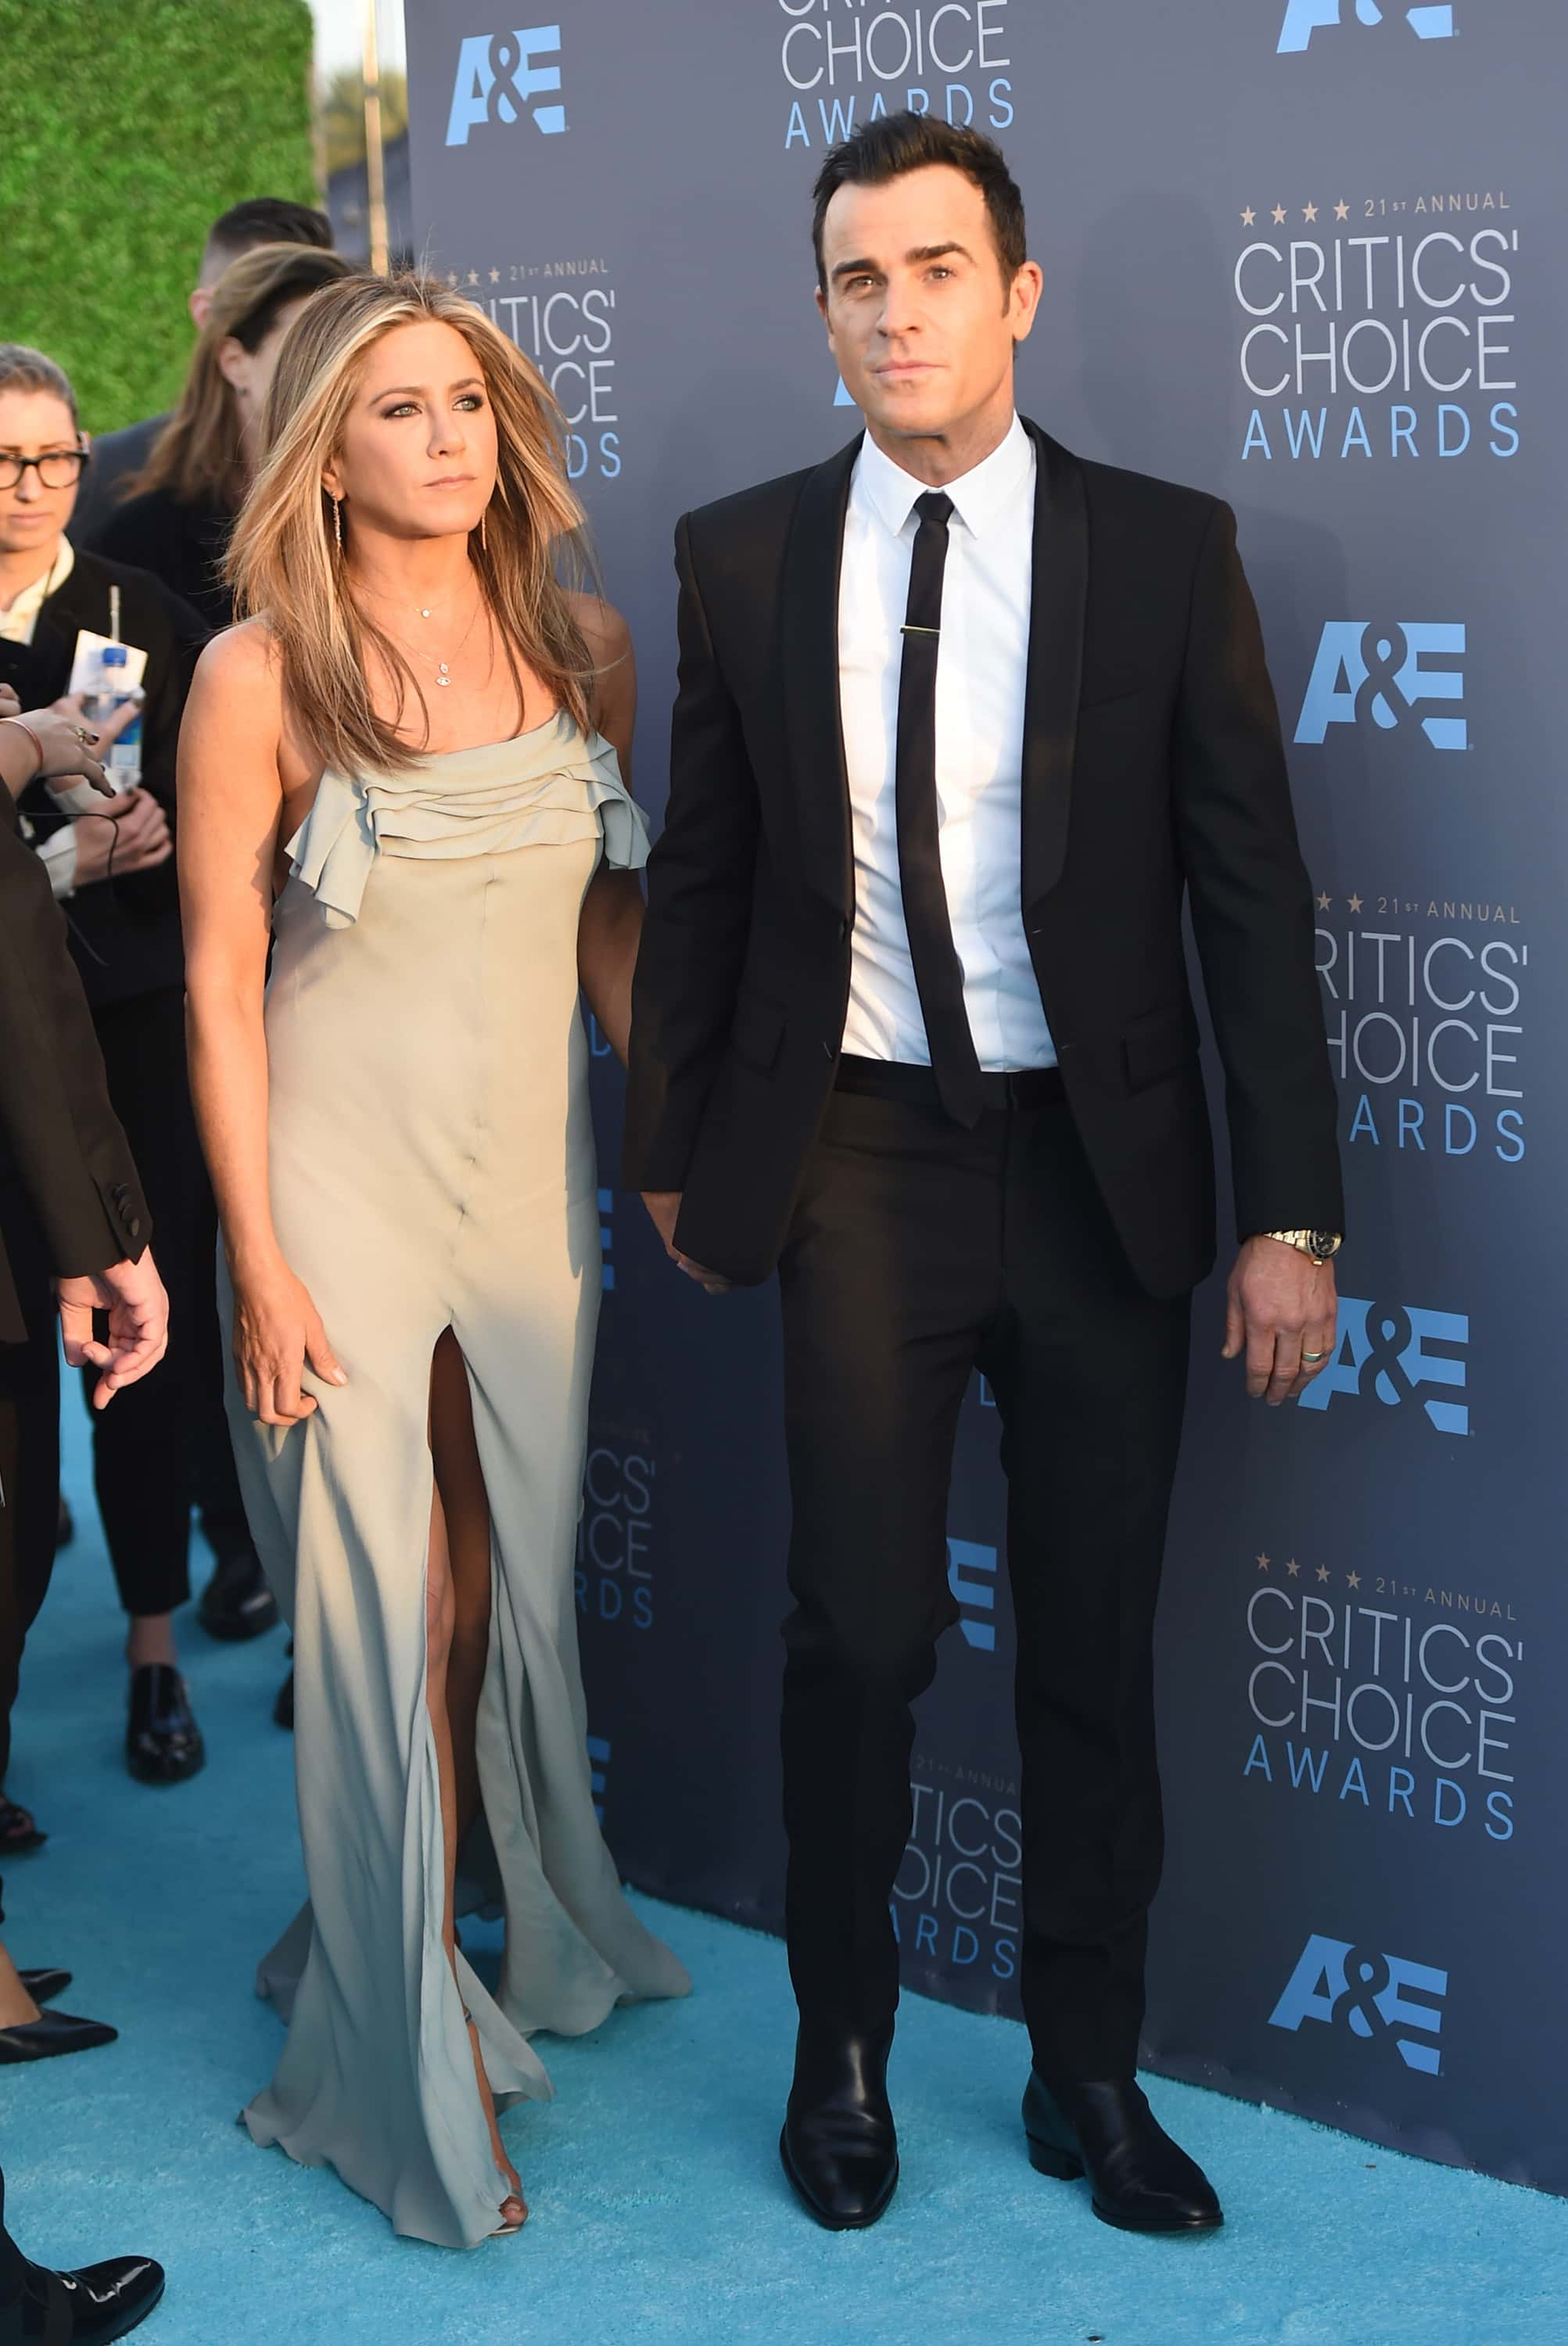 Jennifer and Justin broke up in February (Photo by Jason Merritt/Getty Images)